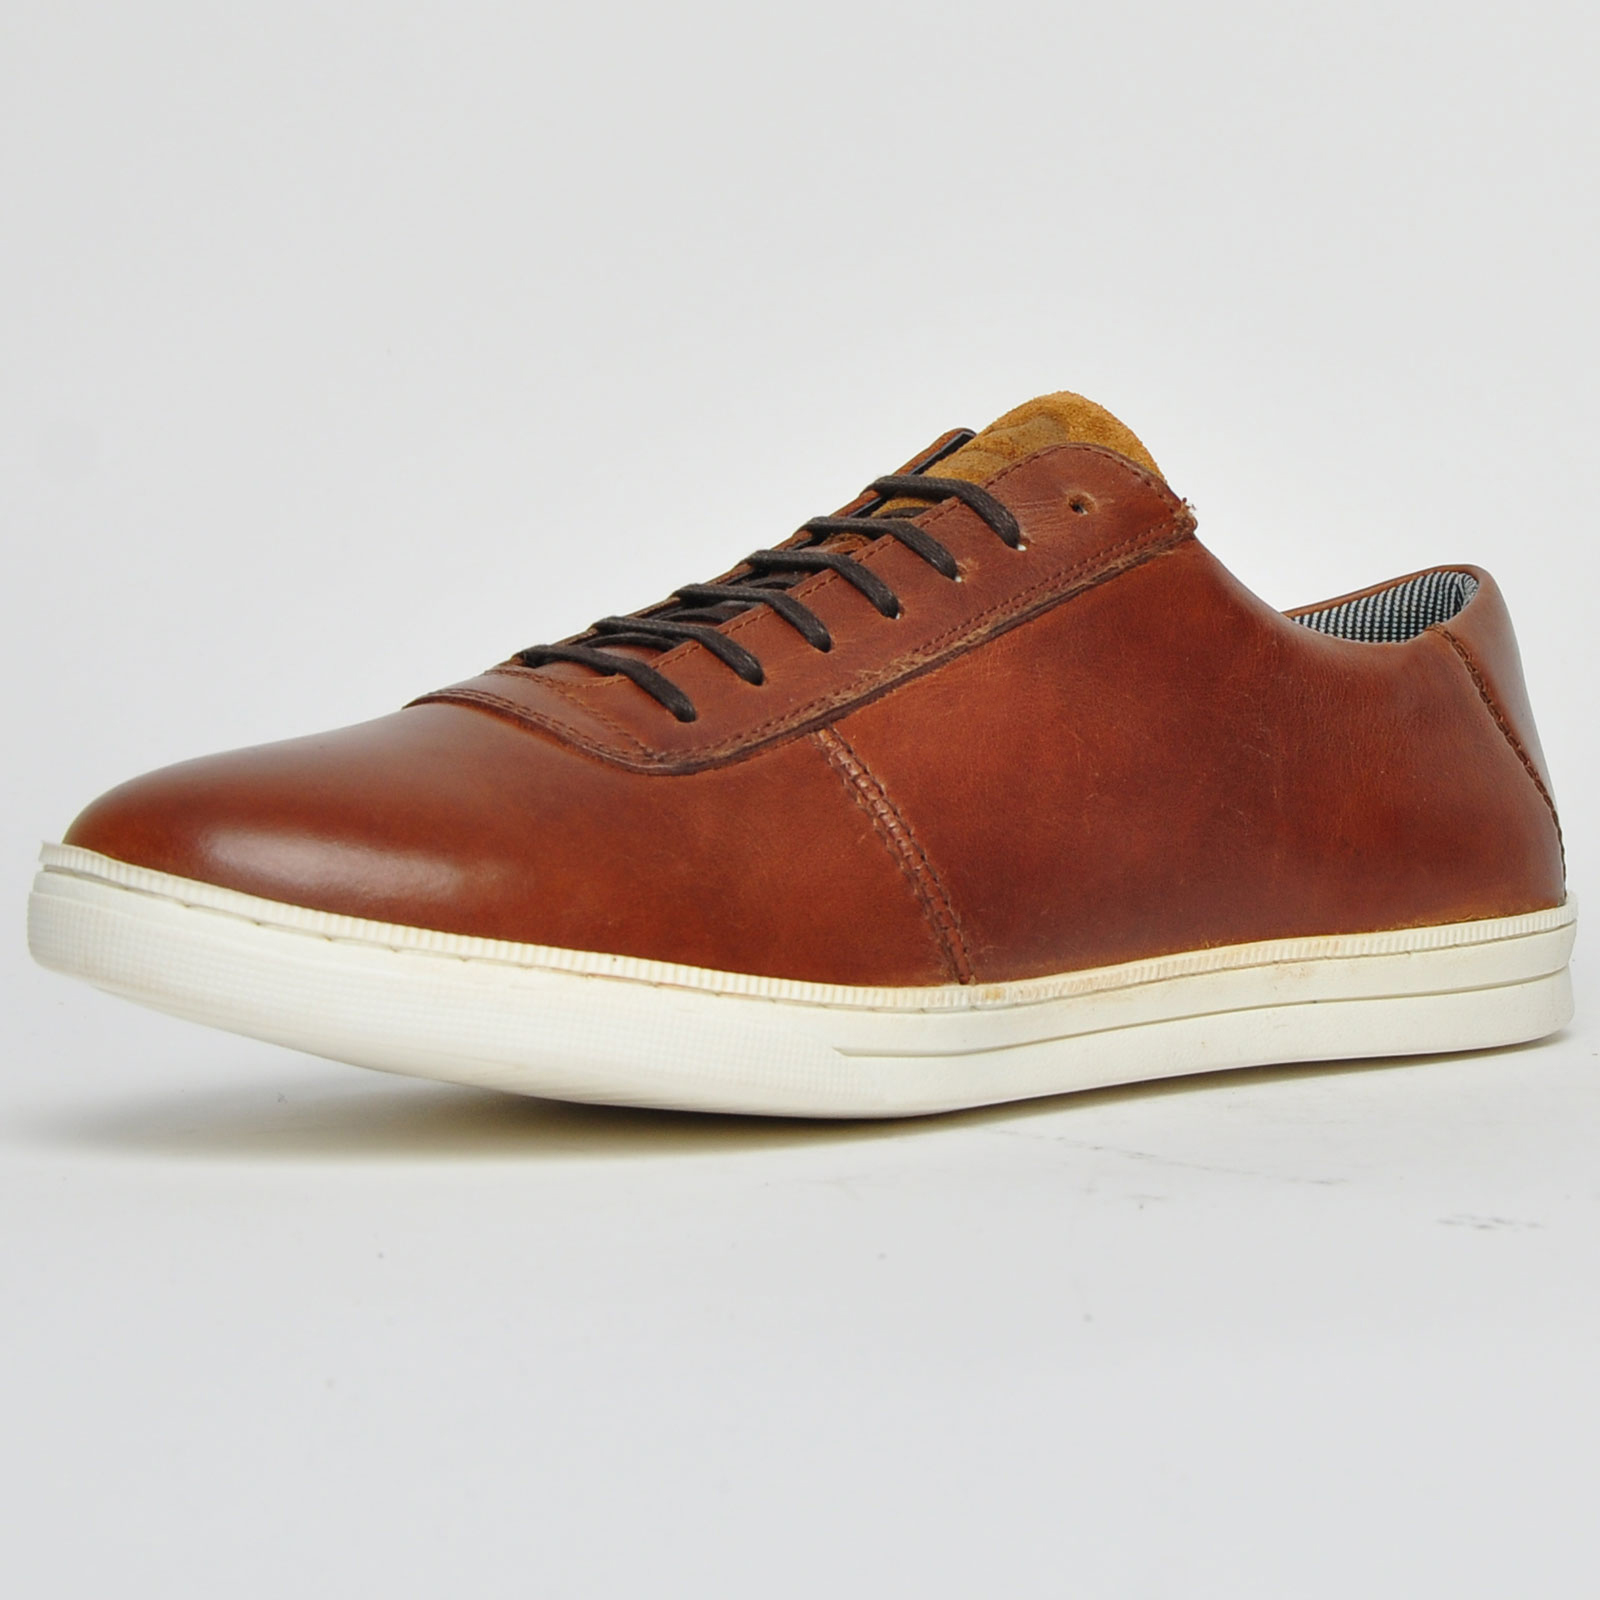 IKON Mens Classic SUEDE LEATHER Smart Casual Designer Shoes From £14.99 FREE P/&P